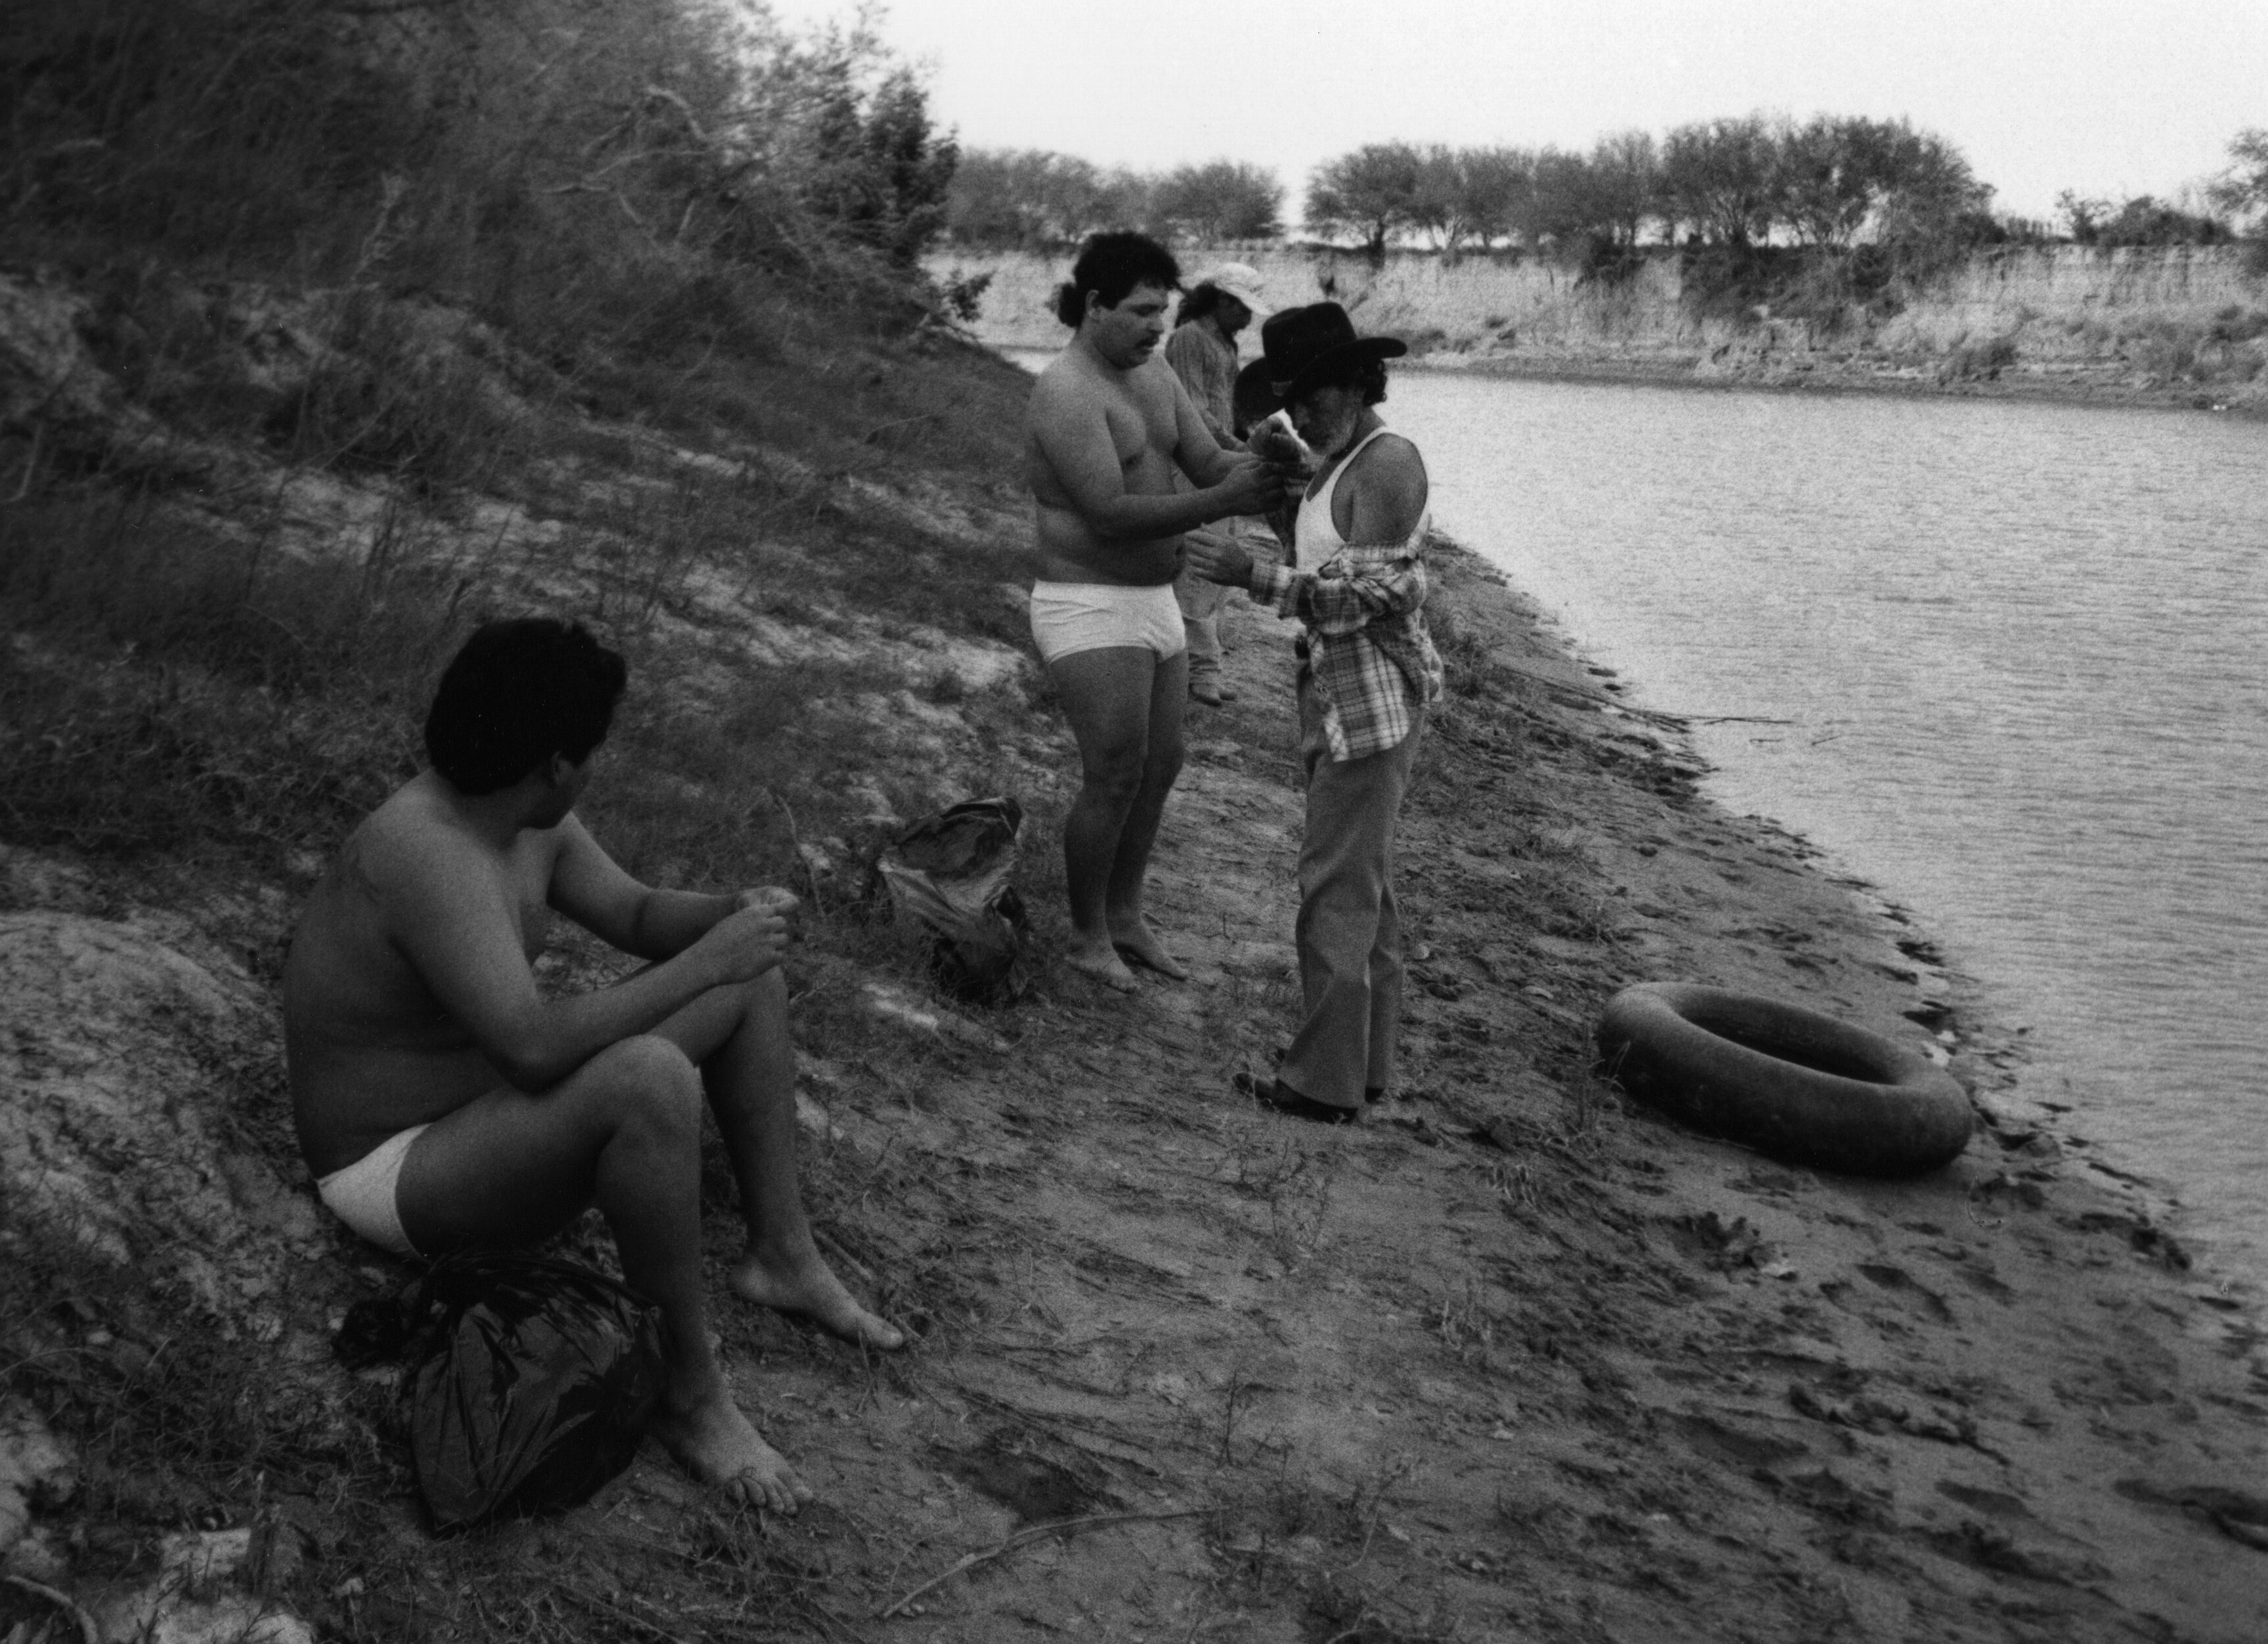 Men stripped or stripping to their underwear on a river bed